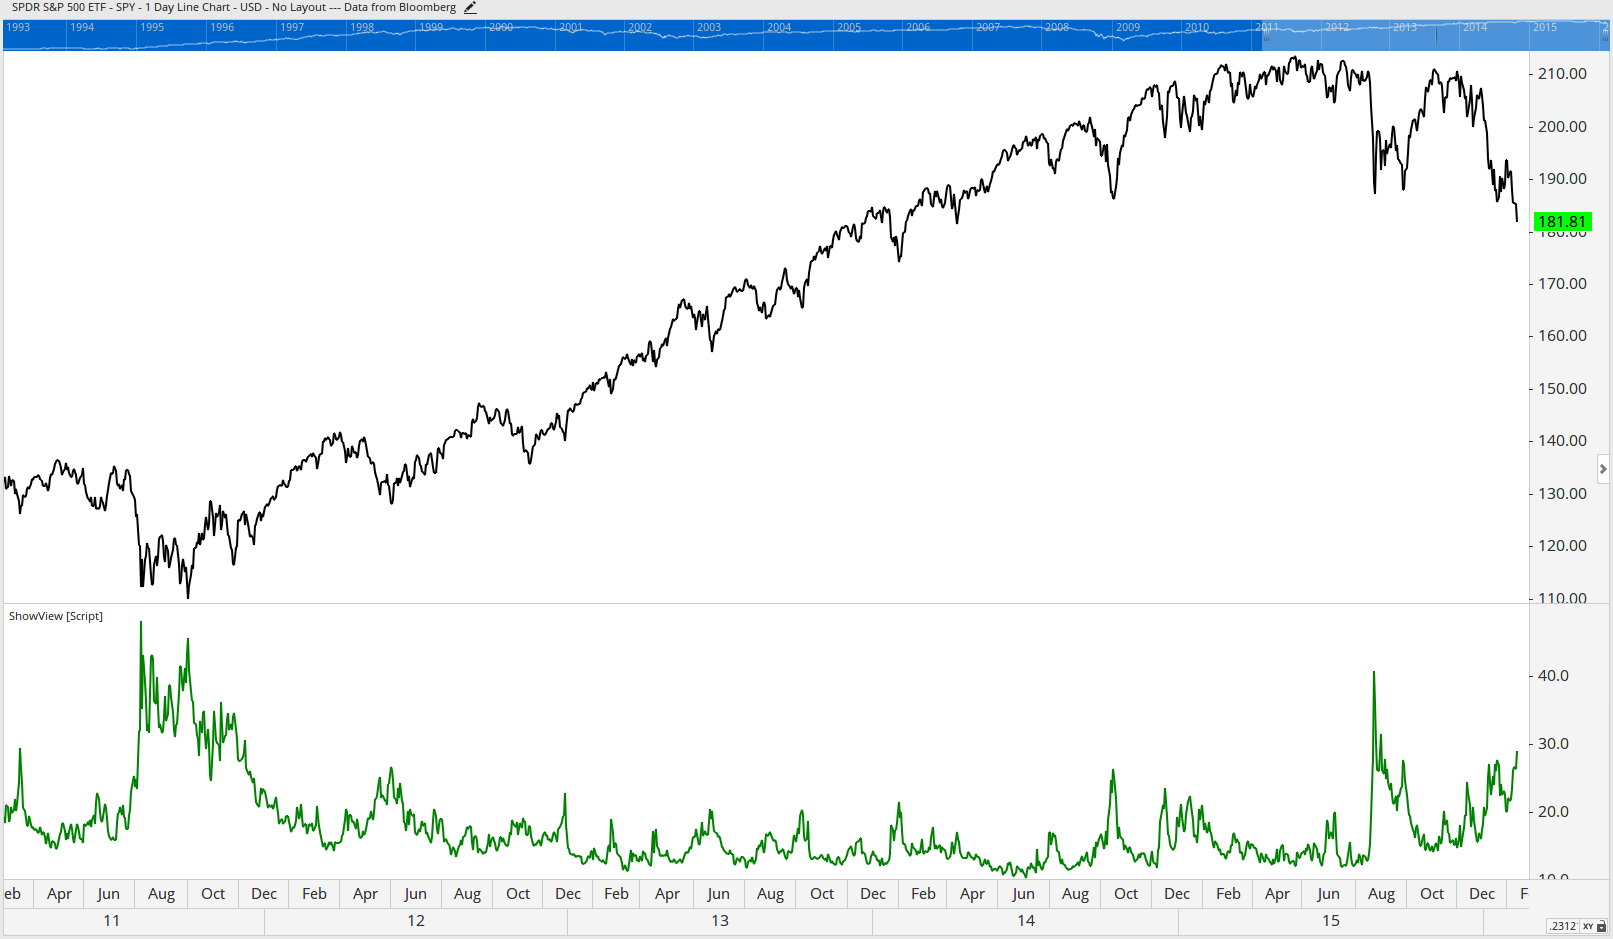 The SPY–S&P500 Index in the top pane with its VIX–Volatility Index in the lower pane